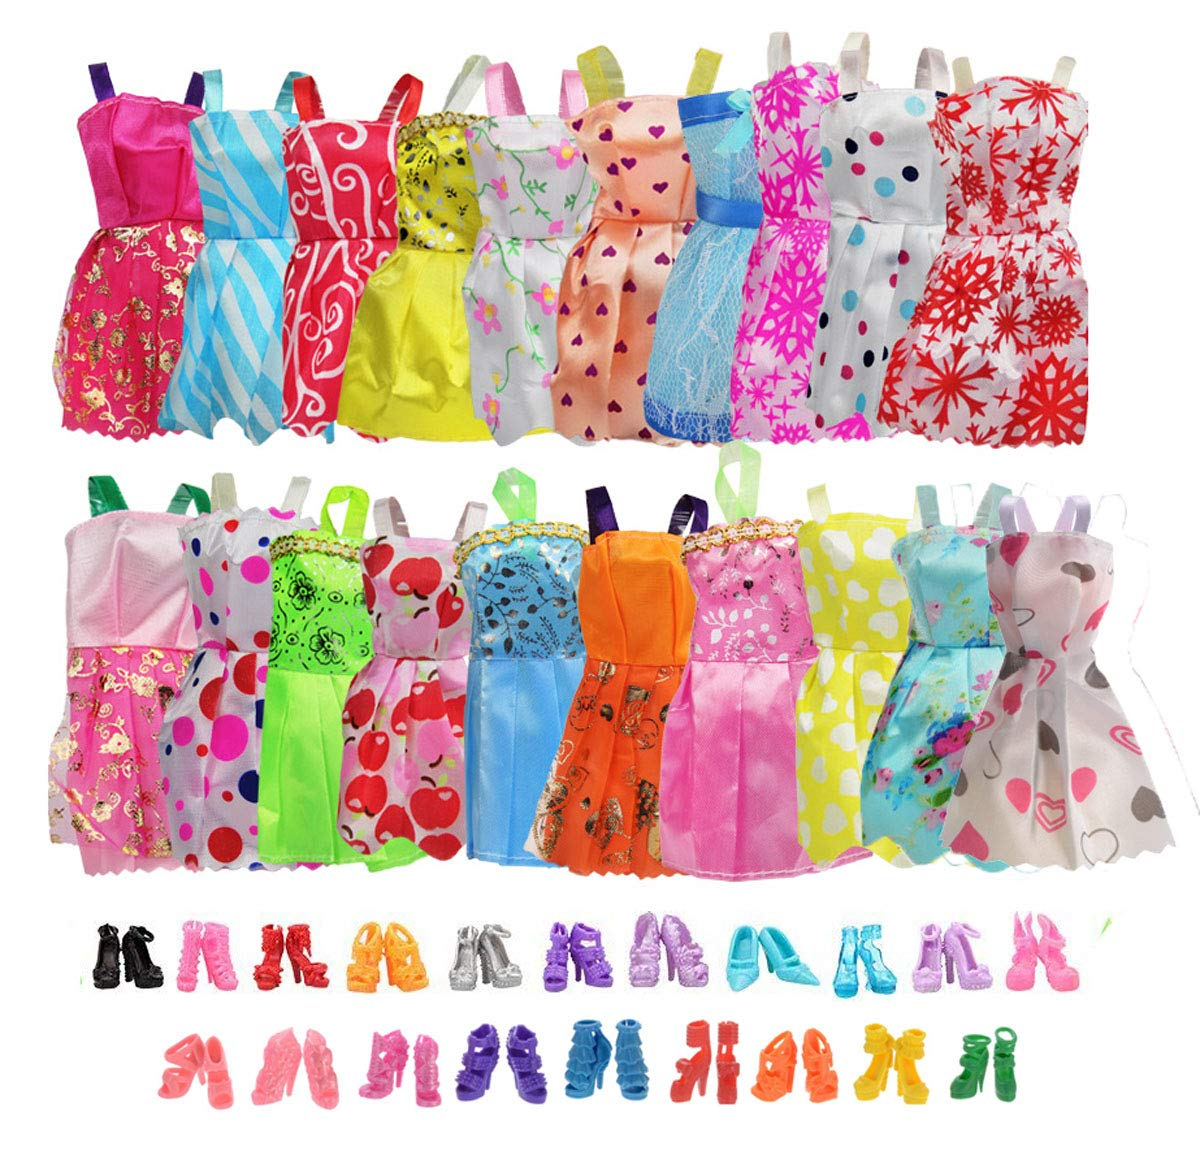 20 Pack Party Gown Outfits Dresses with 20 Pairs Doll Shoes for Barbie Doll Girl's Birthday Gift Fashion Handmade Evening Party